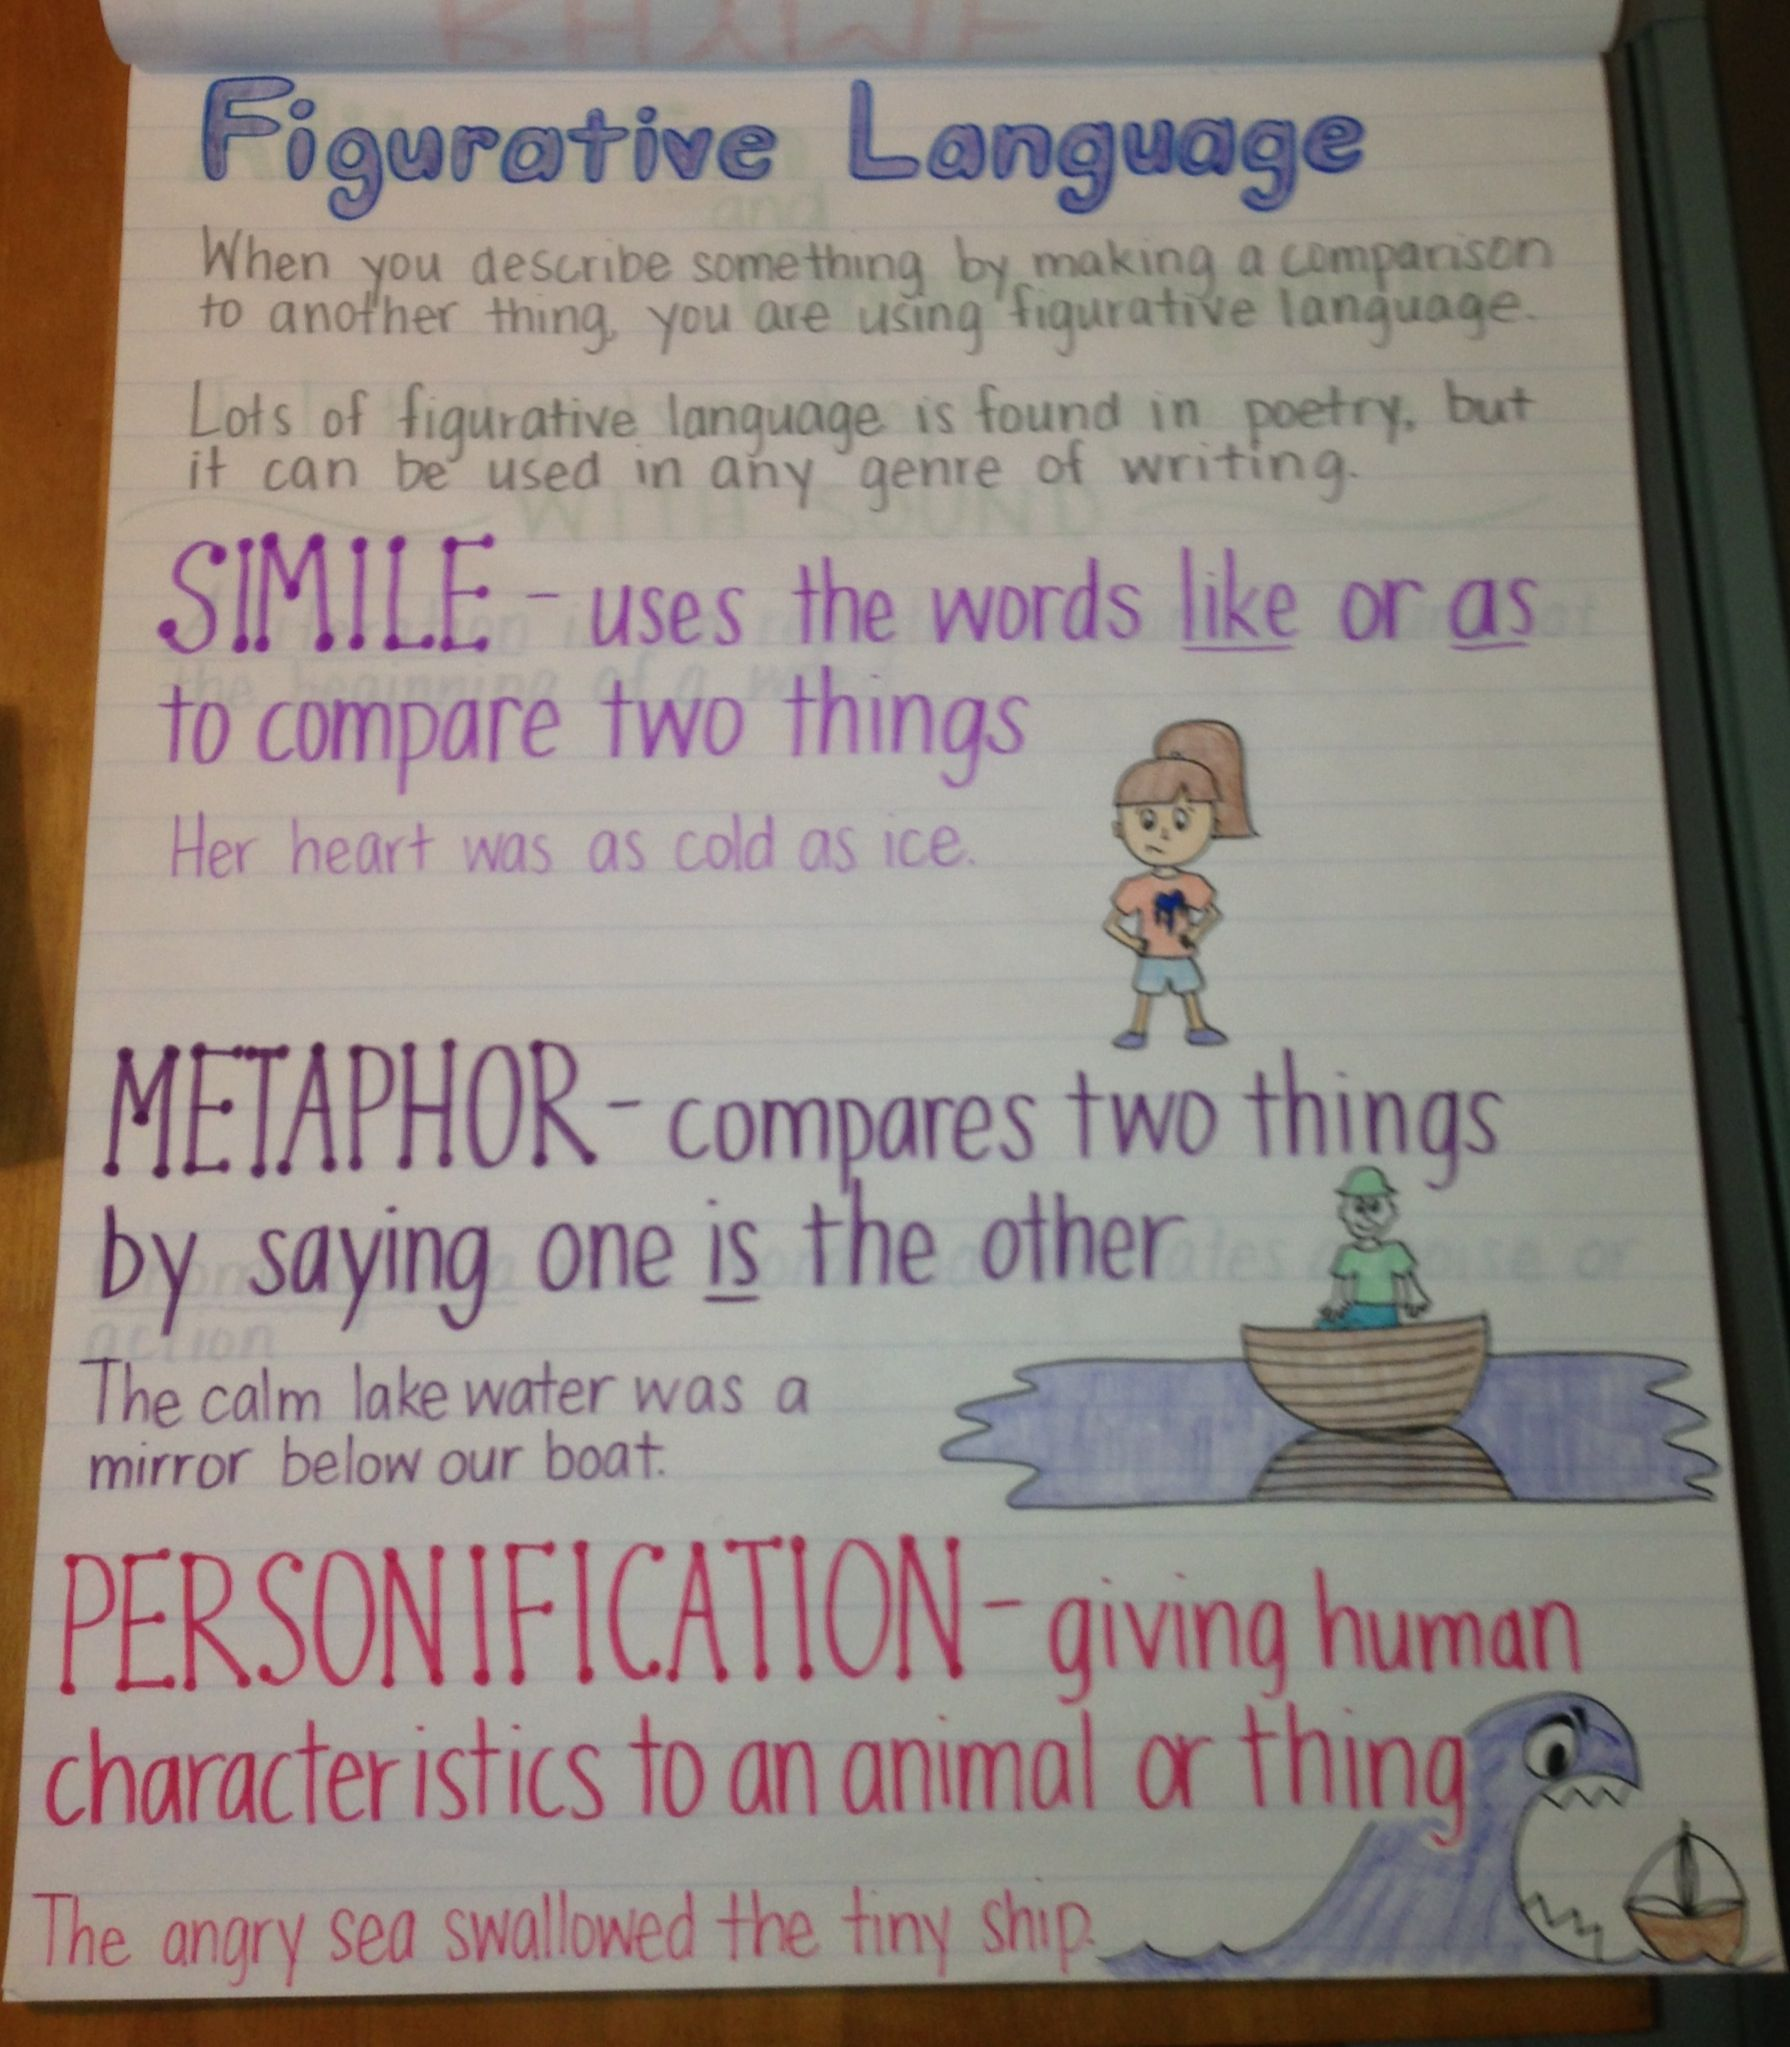 common core rl3 4 an example of a simile metaphor common core rl3 4 an example of a simile metaphor personification